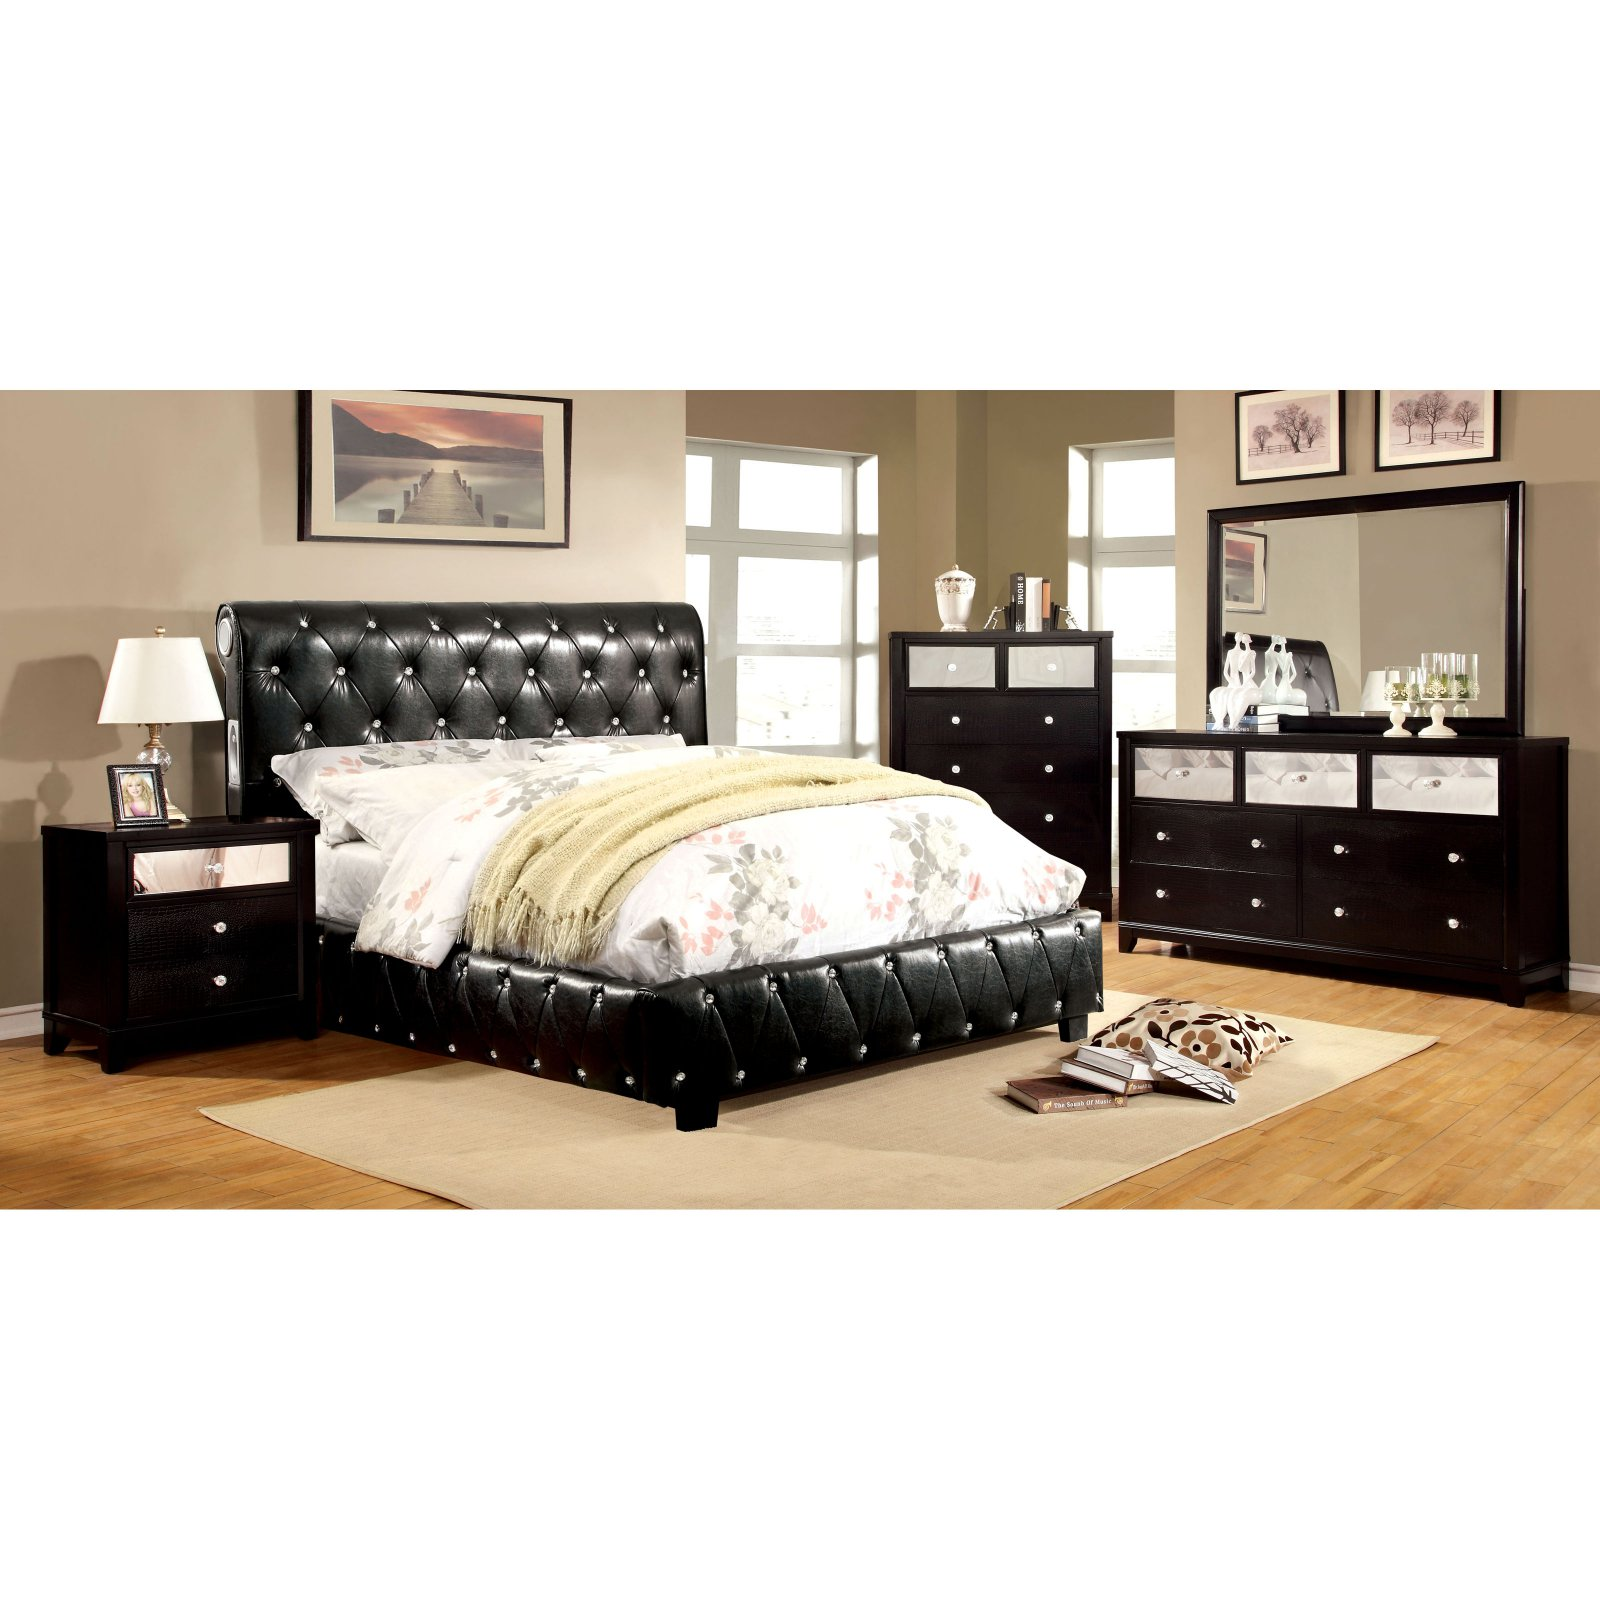 Furniture of America Dahsiel Platform Bed Set with Bluetooth Speakers